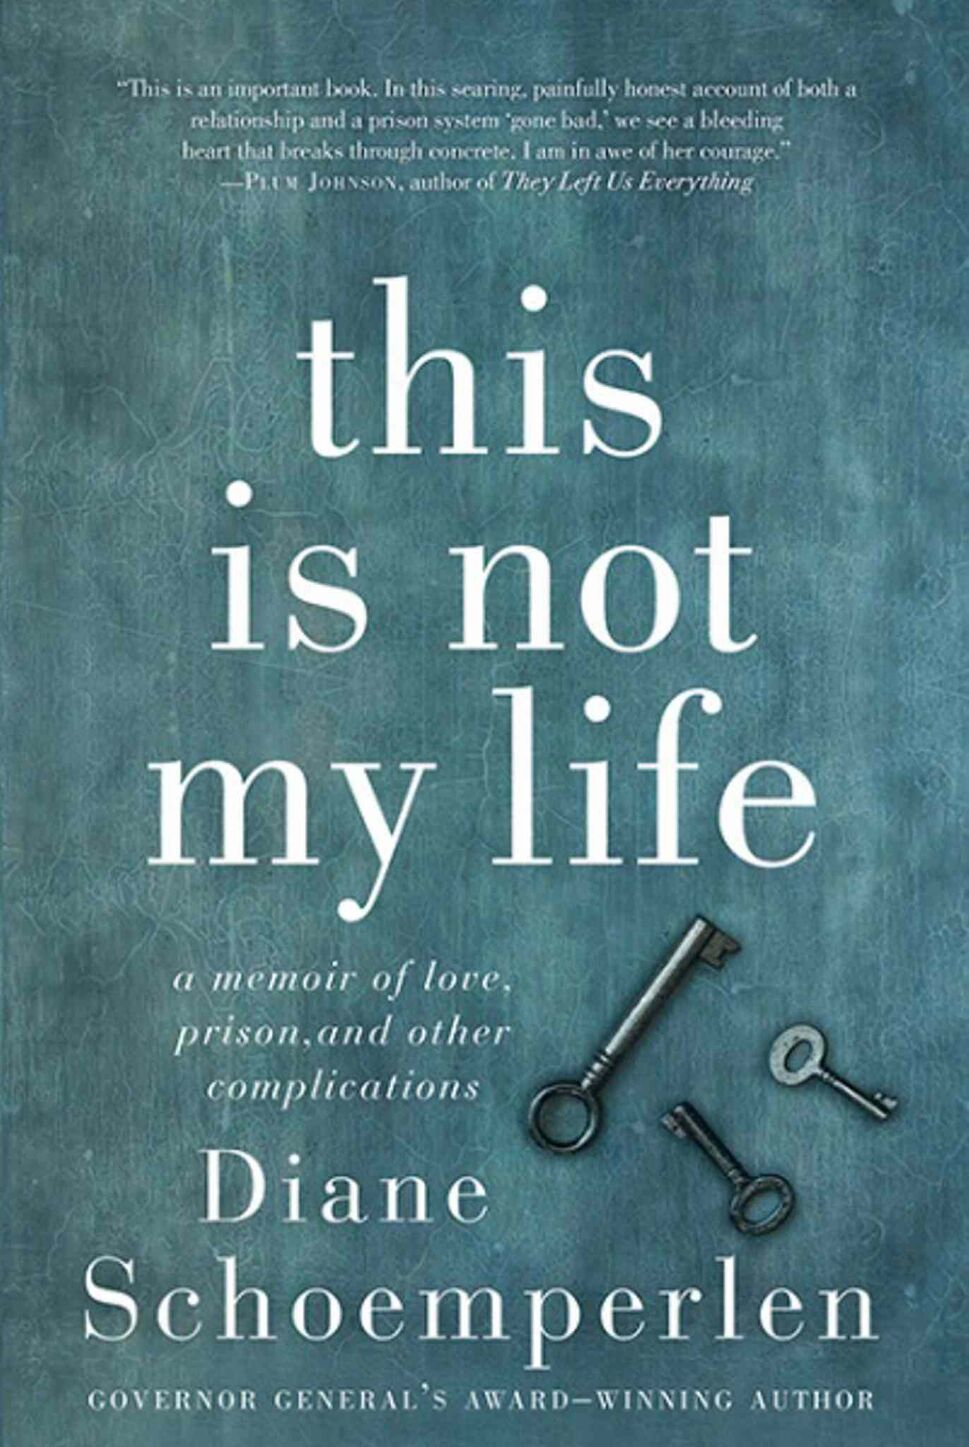 <h3>This Is Not My Life: A Memoir of Life, Prison and Other Complications</h3> <br/> By Diane Schoemperlen <br/> <strong>Kingston, Ont., author Diane Schoemperlen, best known for her award-winning fiction, exposes the vagaries of the Canadian prison system while bravely revealing, in humorous and heart-rending detail, her recent romance with a convicted murderer. Her memoir crackles with drama, irony and sheer authenticity.</strong> <br/> — Dave Williamson